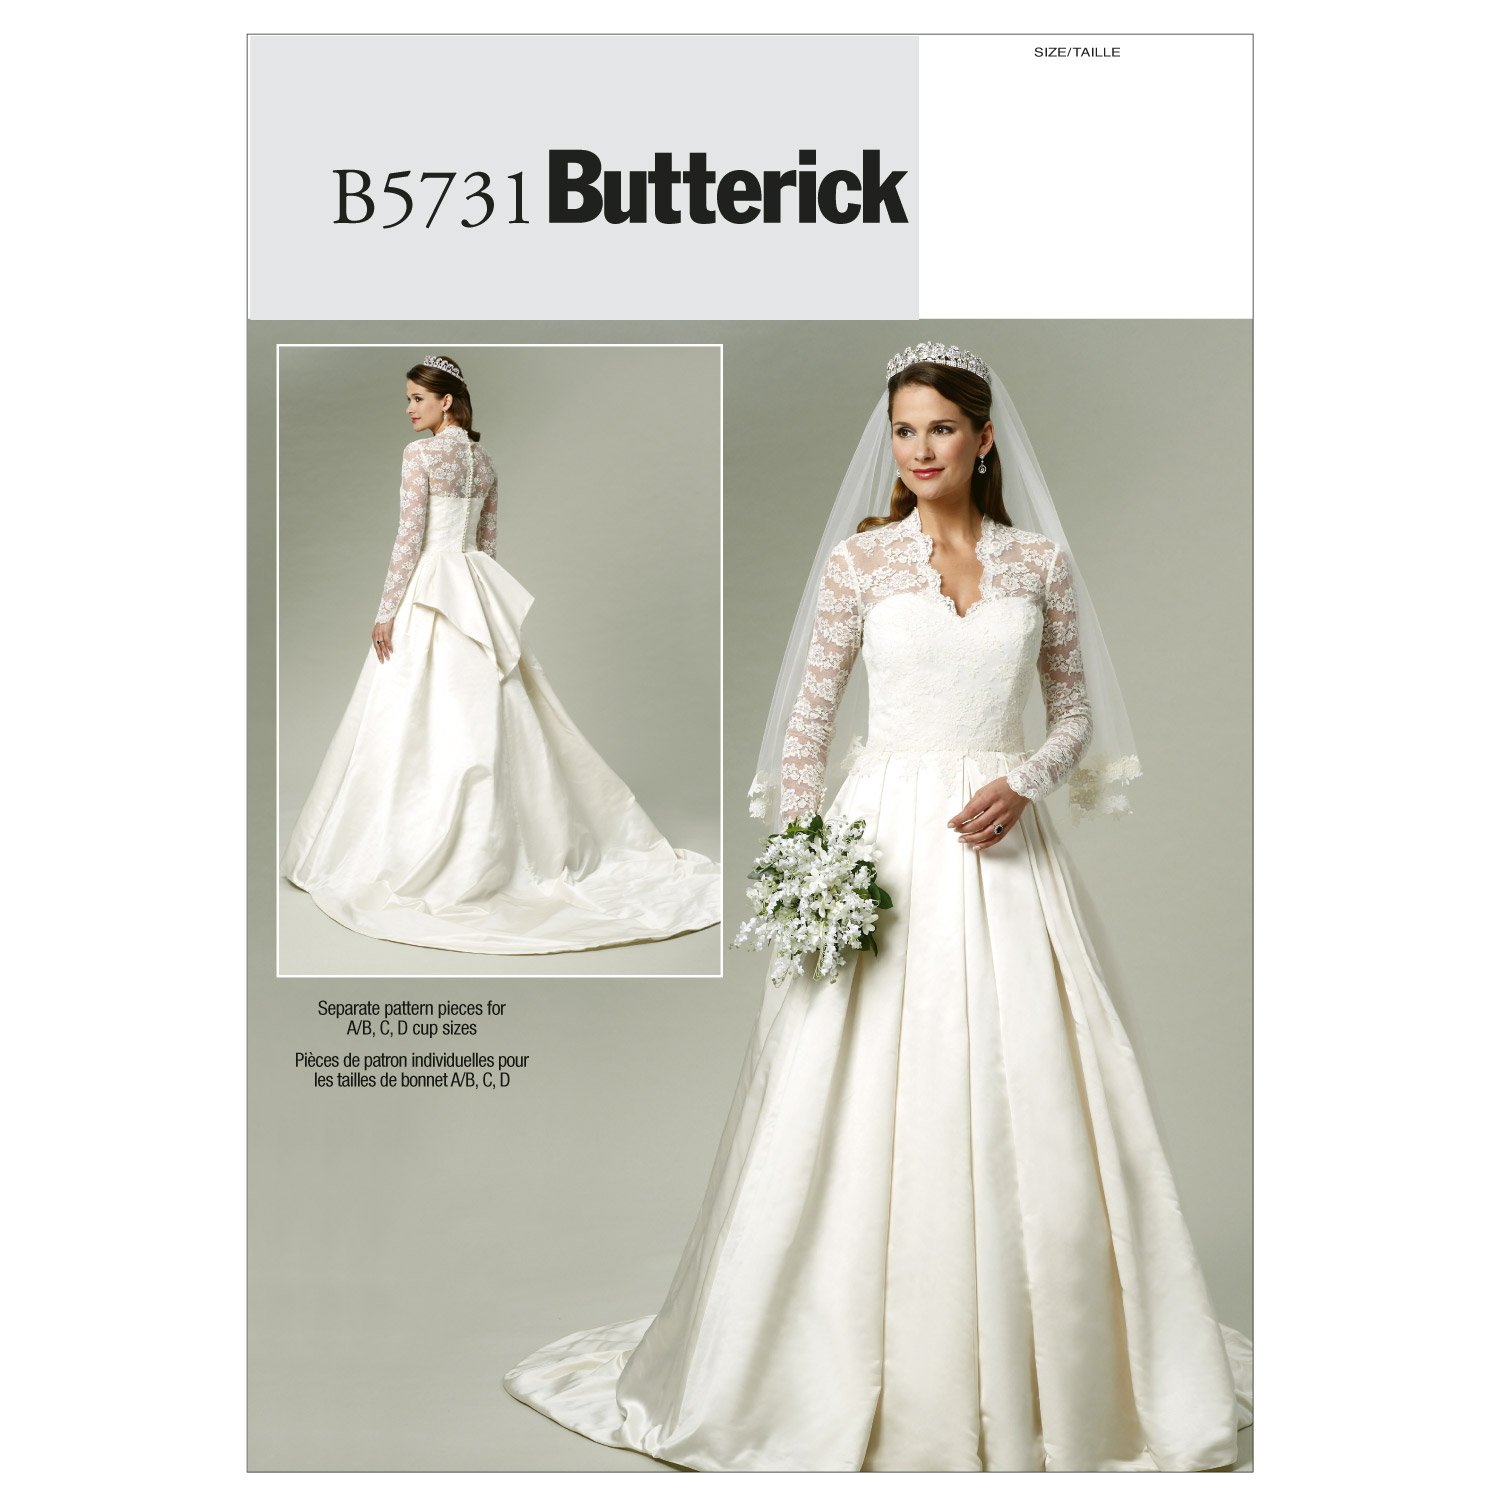 Butterick patterns b5731 size a5 6 8 10 12 14 misses dress pack butterick patterns b5731 size a5 6 8 10 12 14 misses dress pack of 1 white amazon kitchen home jeuxipadfo Image collections